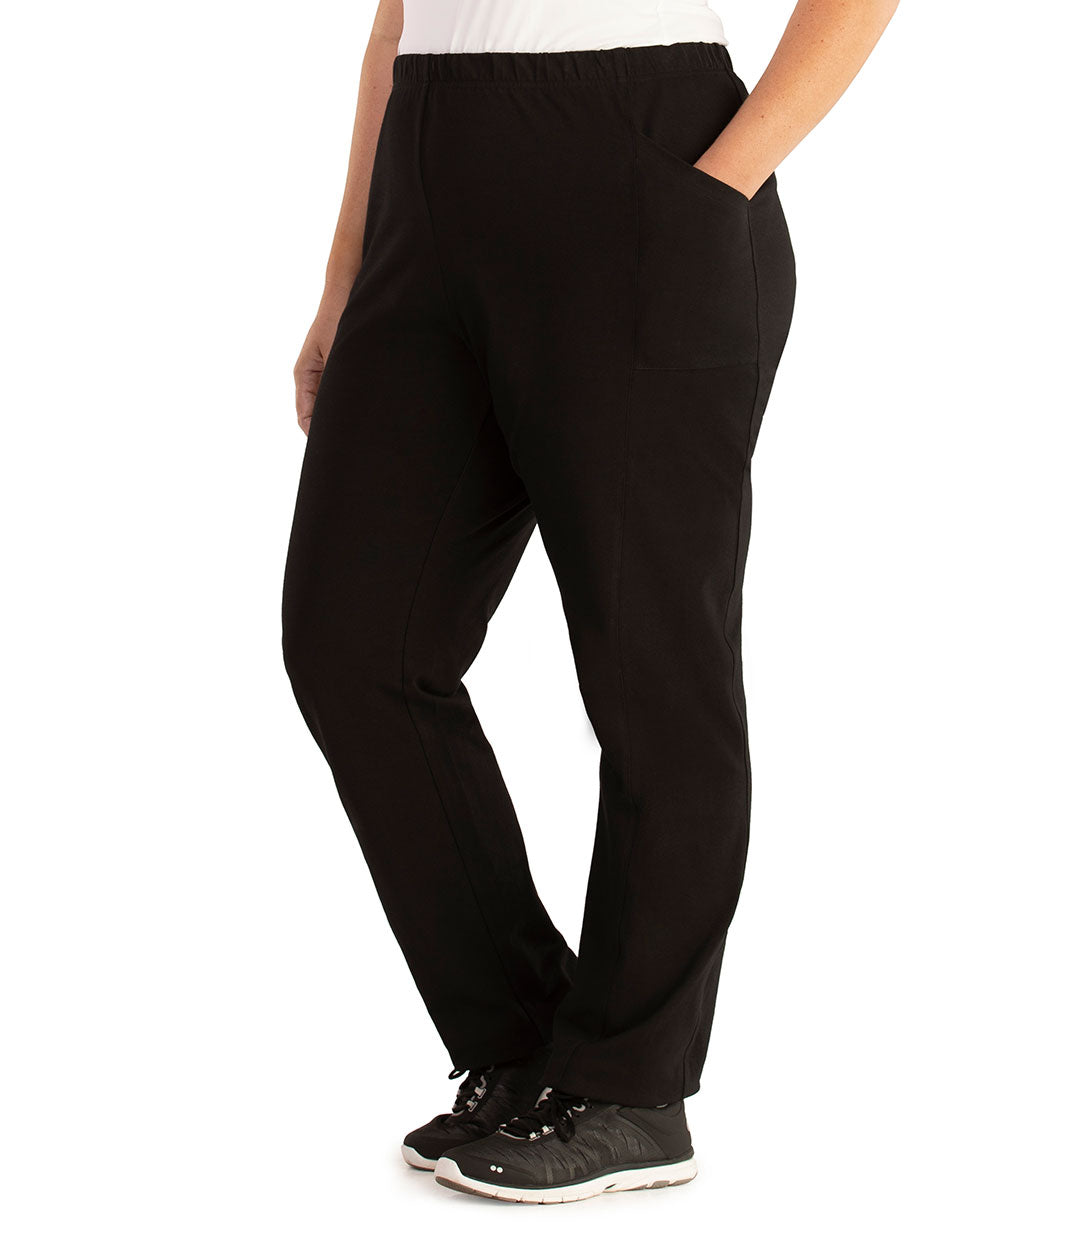 Stretch Naturals Side Pocket Loose Fit Leggings-Bottoms Pants-Hop Wo Trading Co Ltd-XL-Black-JunoActive